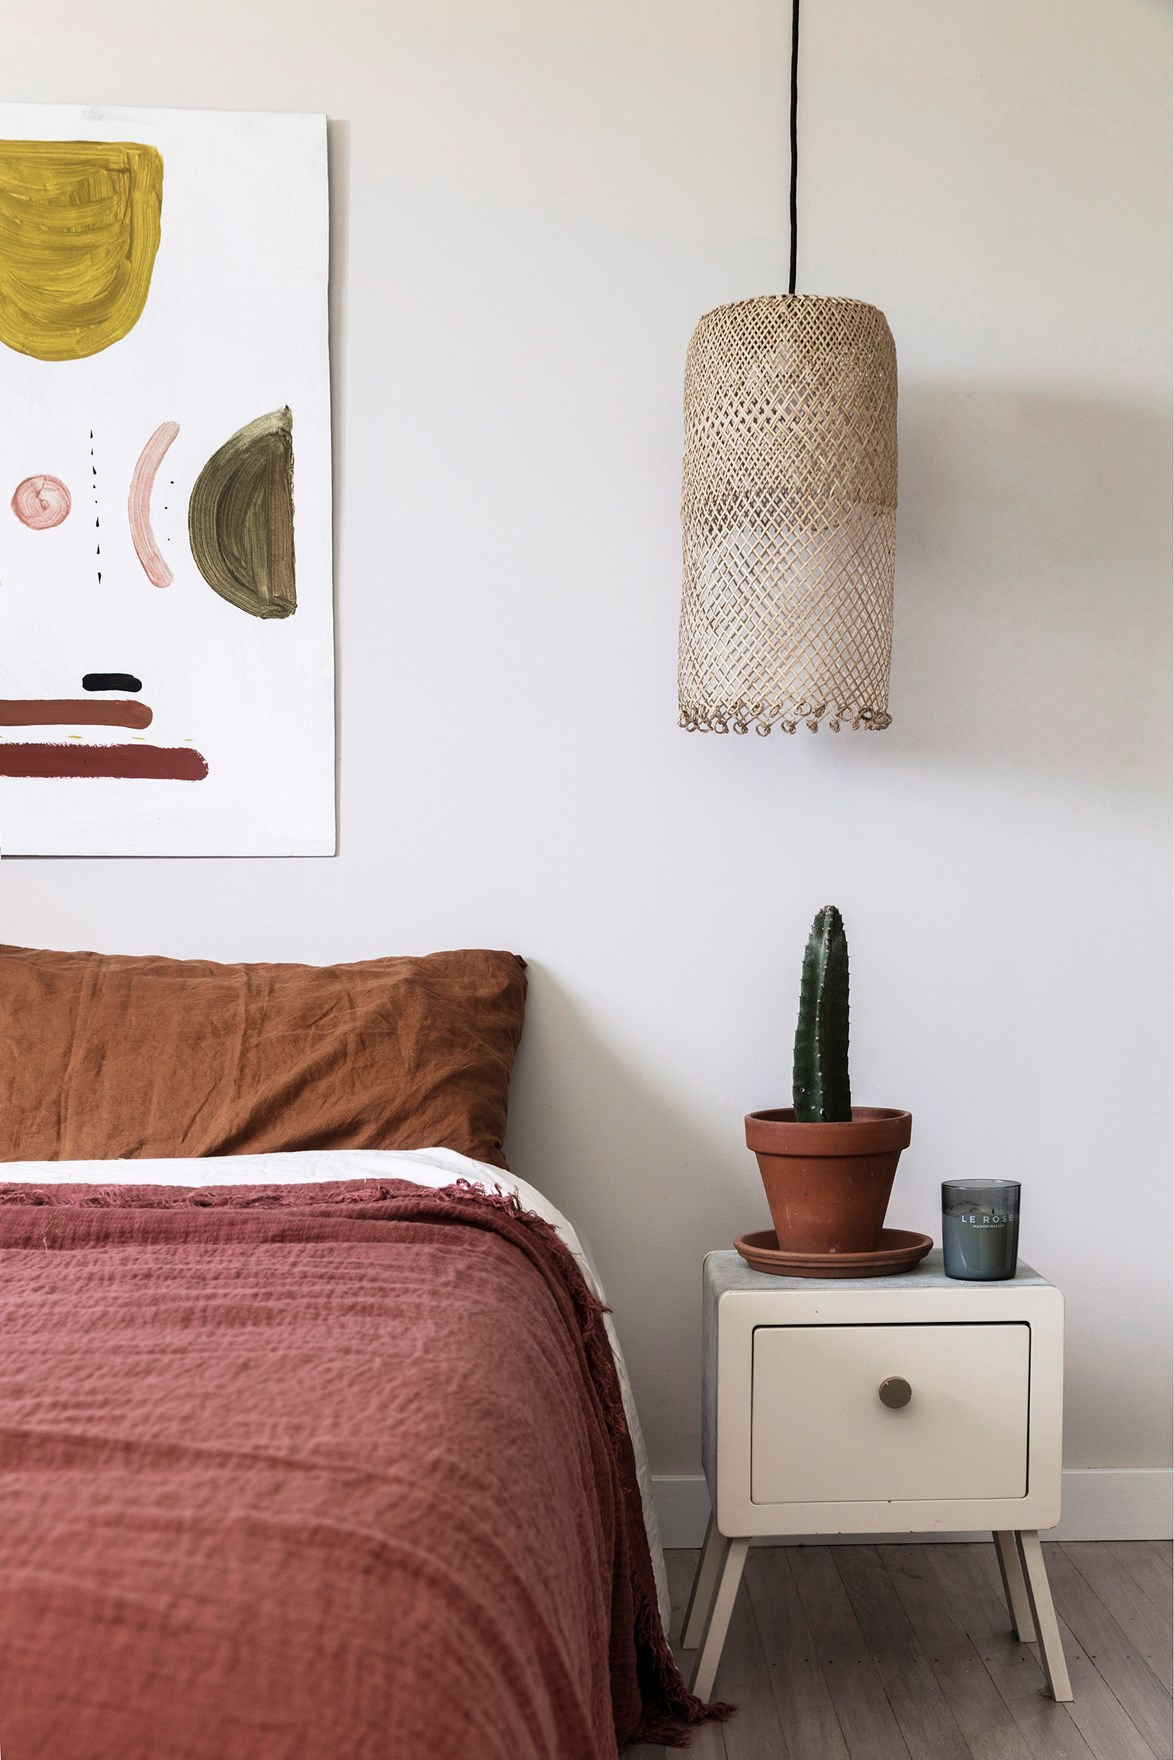 Textured linen bedding in earthy tones will create a cosy vibe in the bedroom.